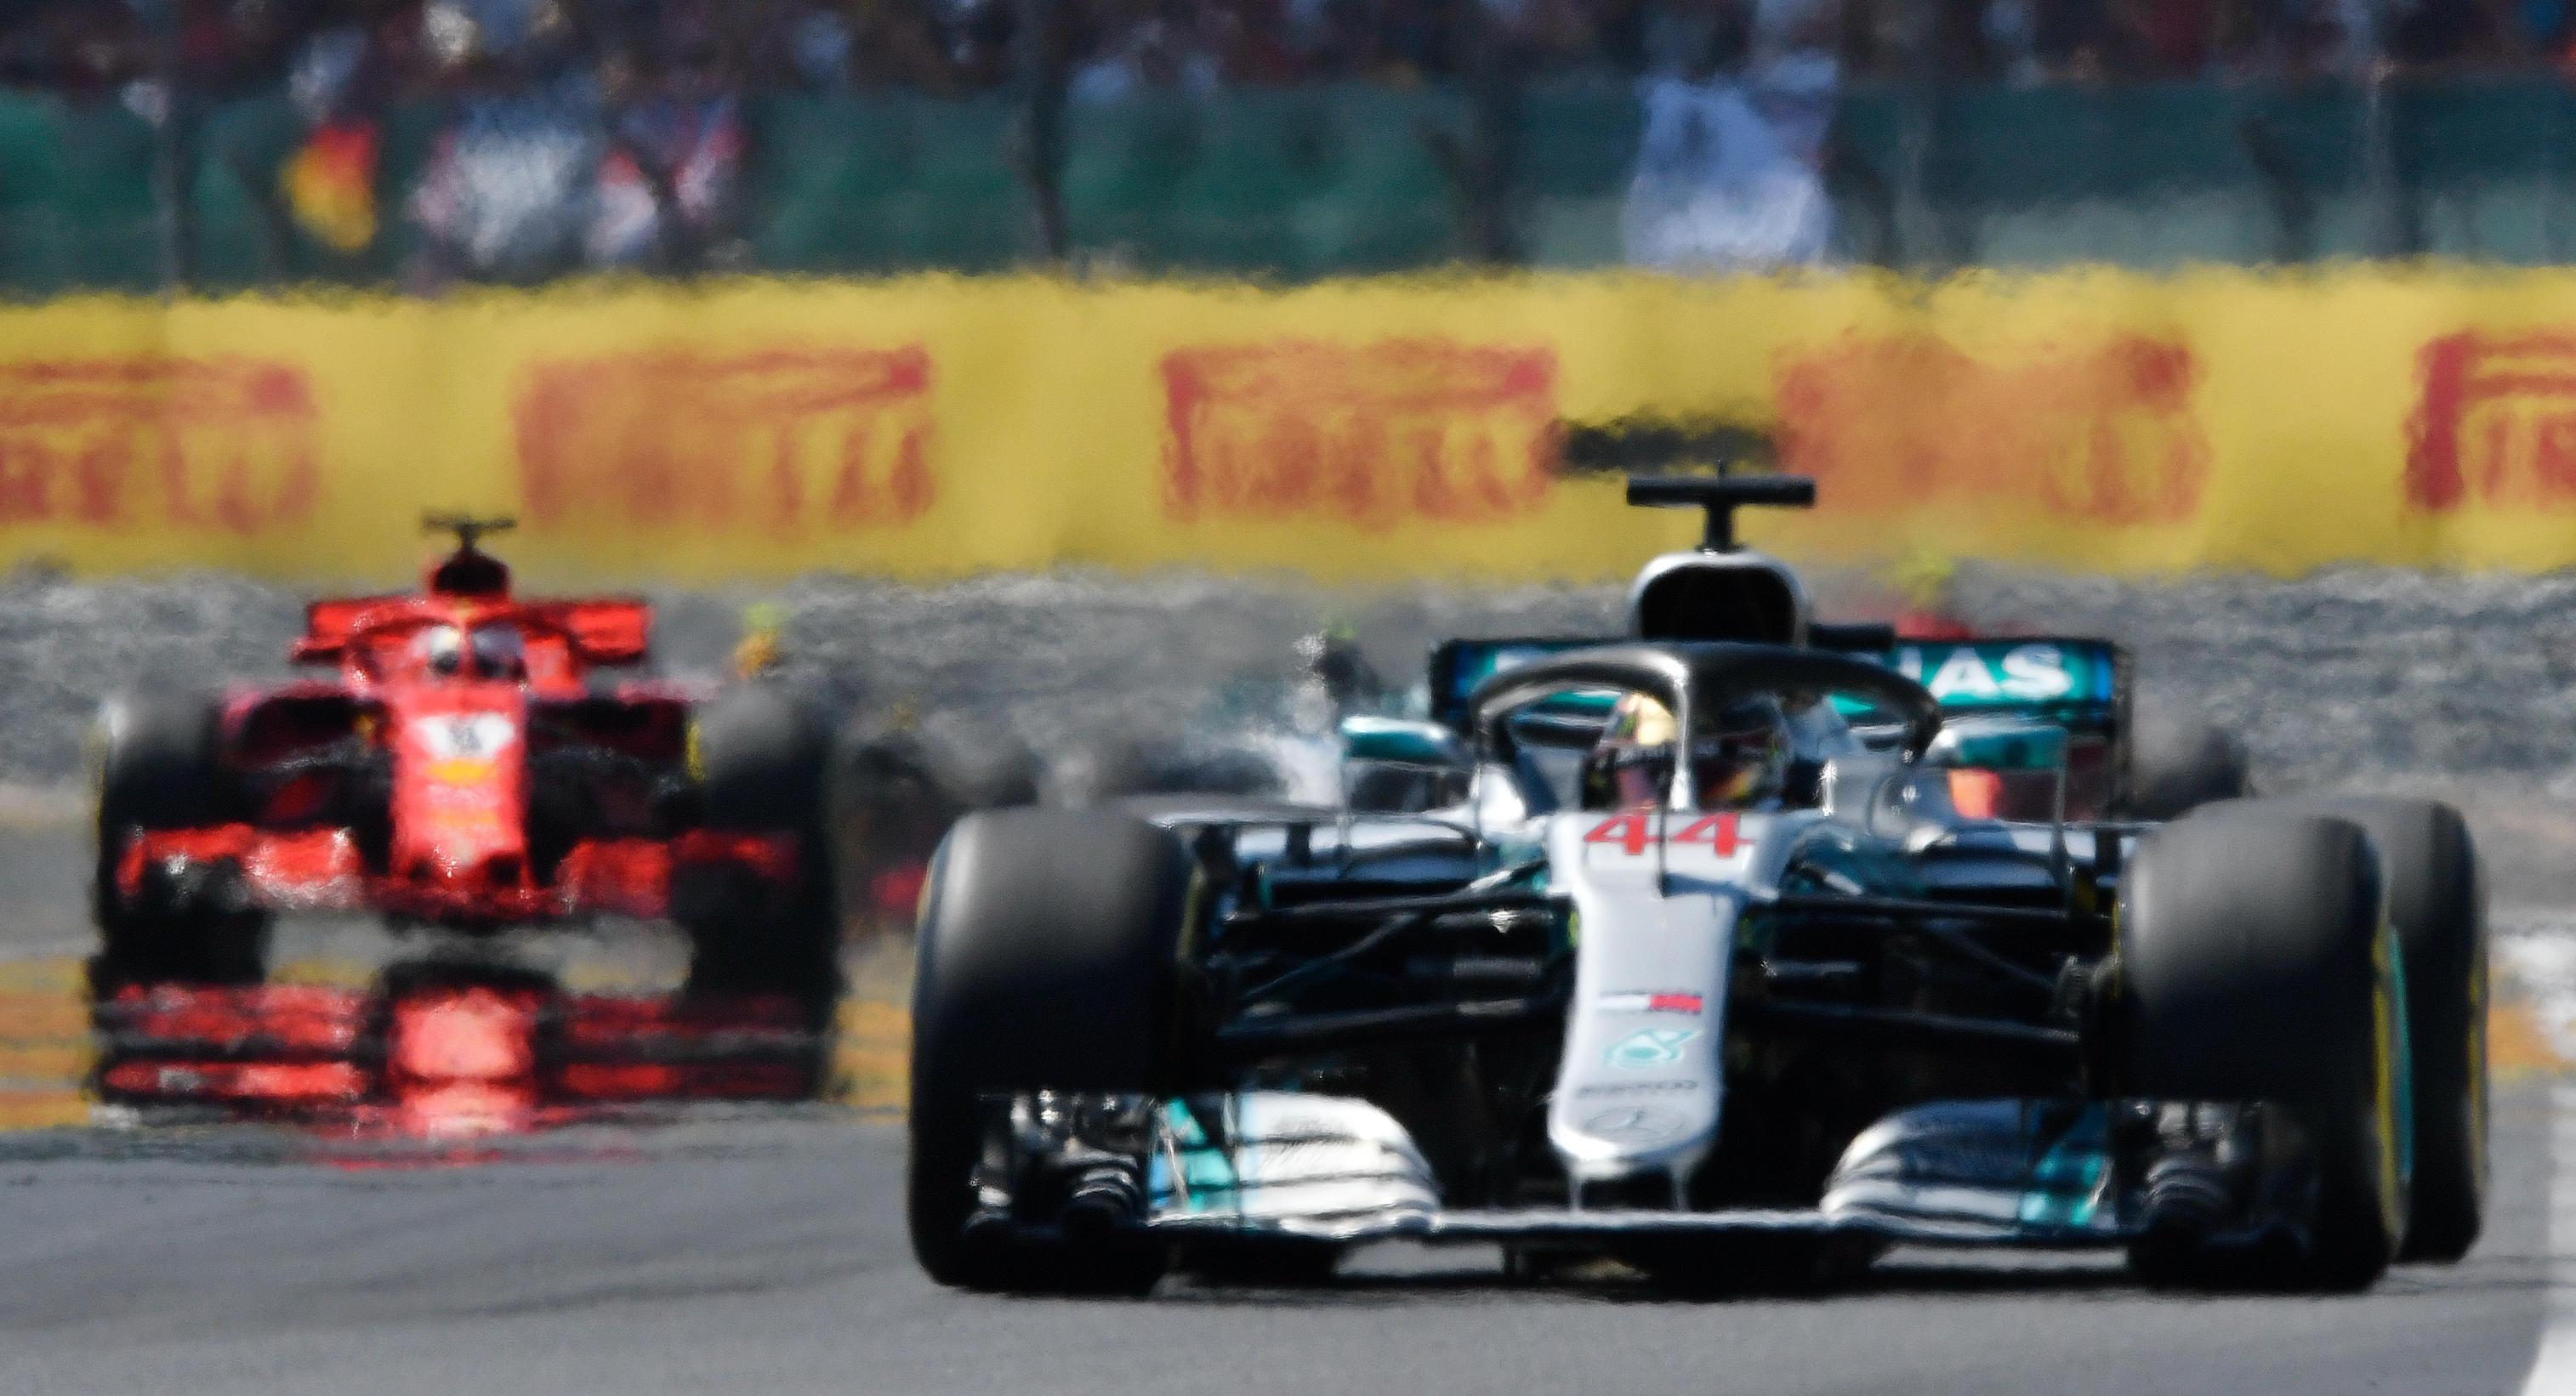 Hamilton can only muster a second place finish at Silverstone